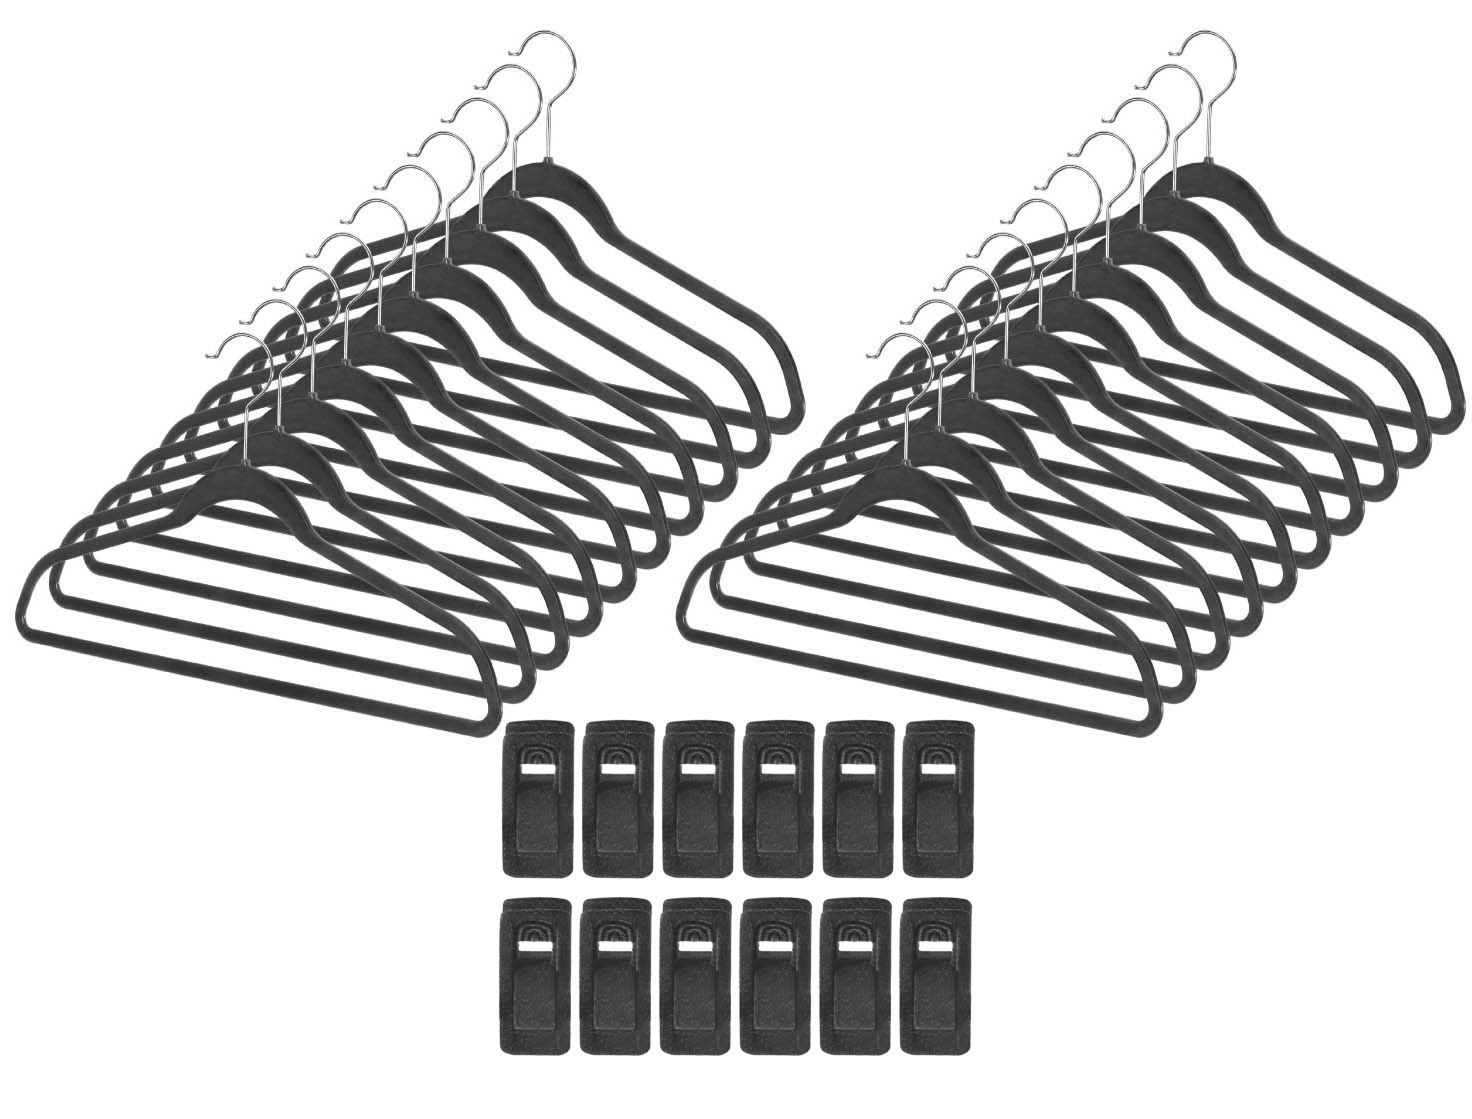 Maven Gifts: Whitmor Home Organization 2-Pack � Set of 20 Space Maker Collection Plastic Suit Hangers, Black with Set of... by